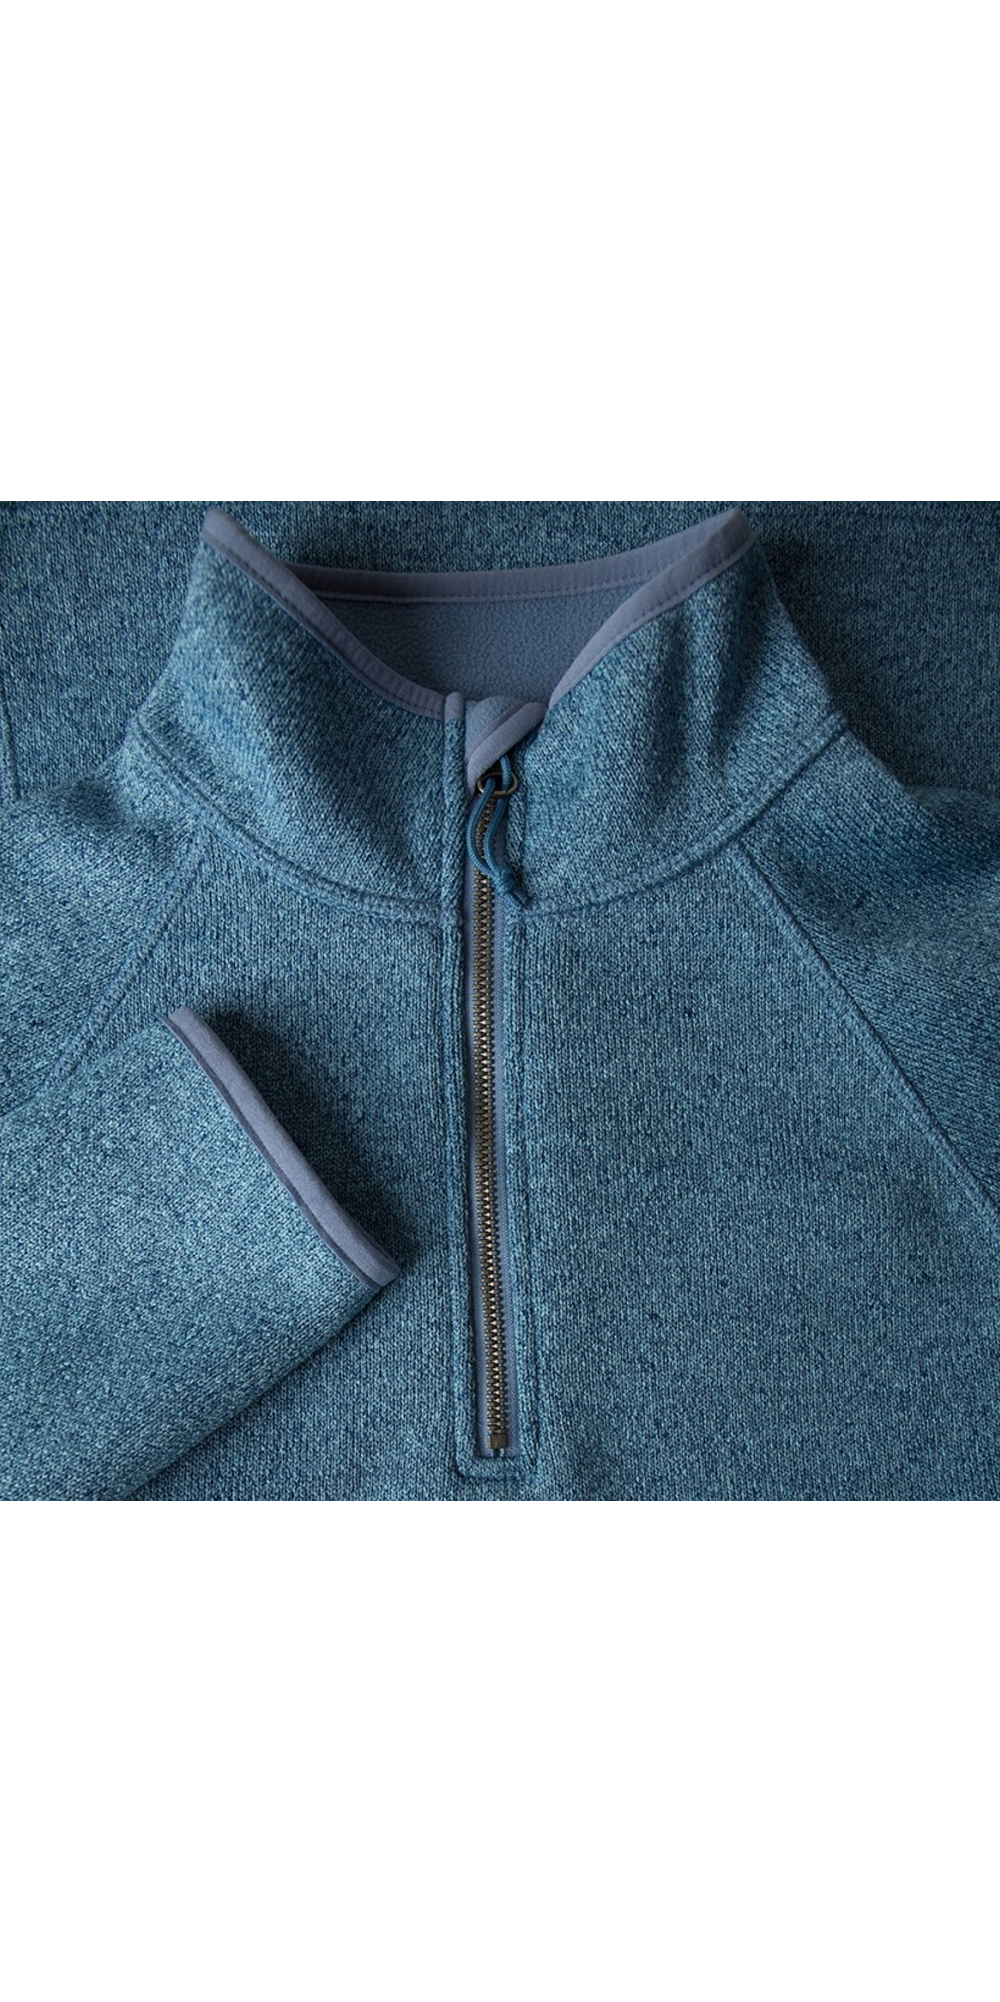 Gill Womens Knit Fleece in Blue Melange 1491W